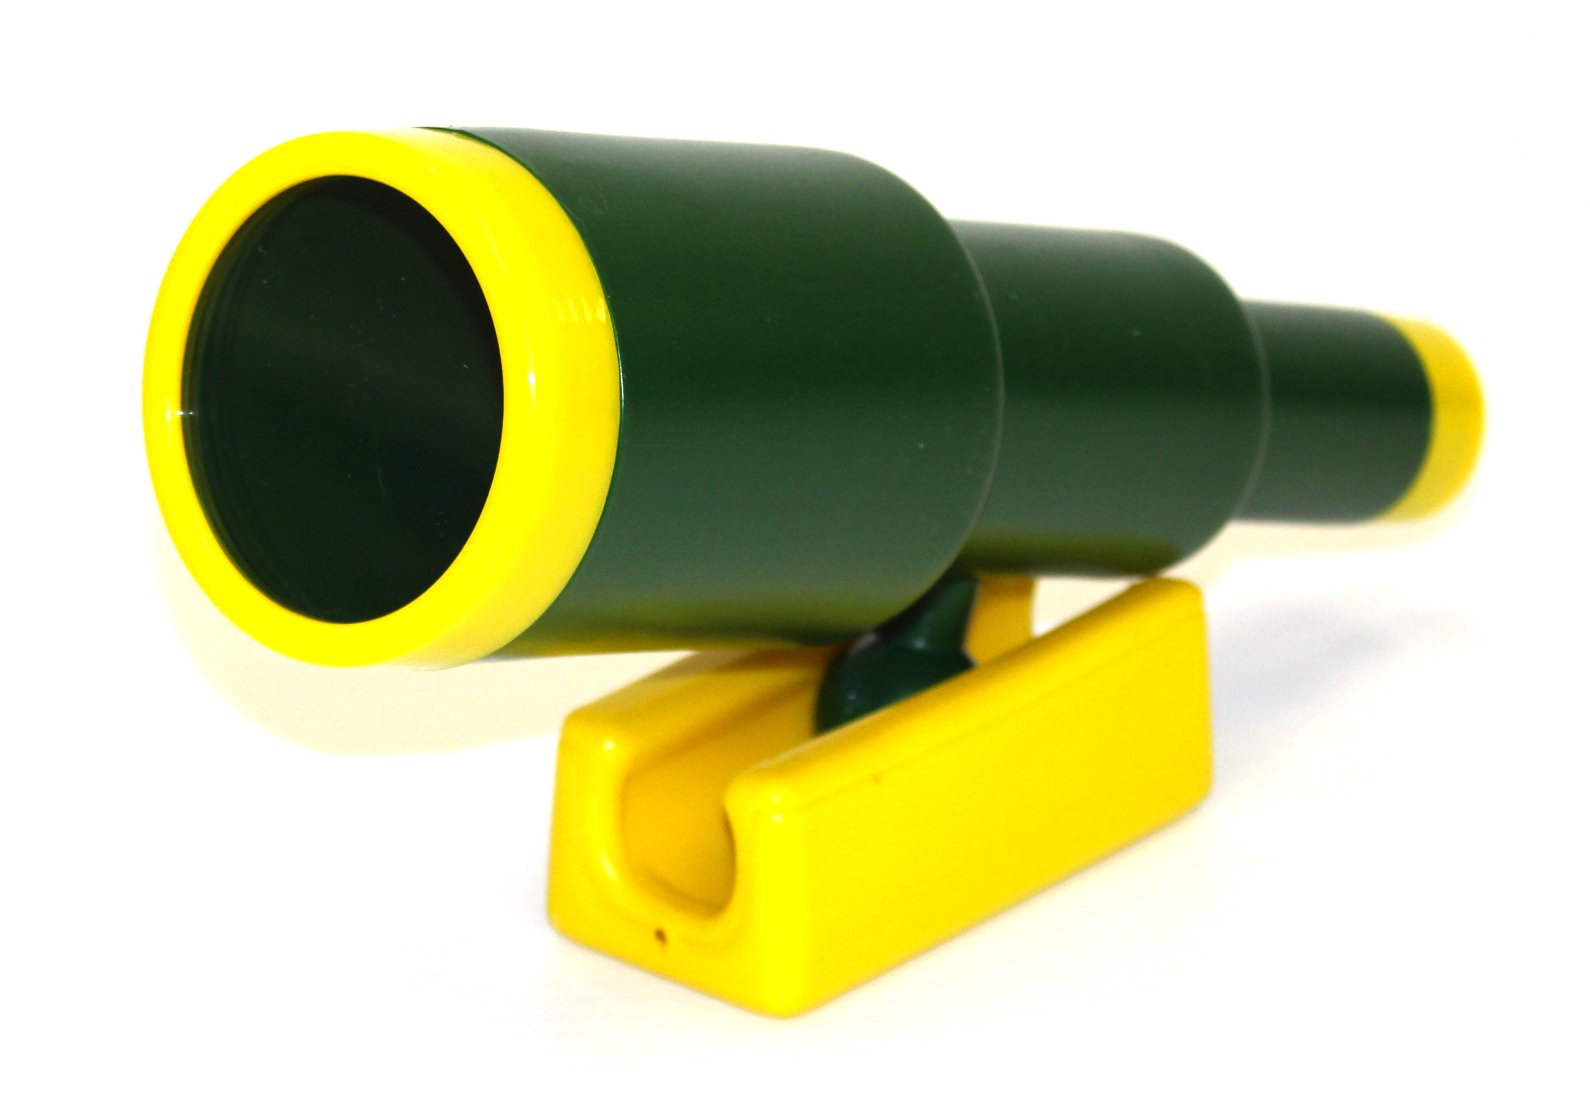 Eastern Jungle Gym Extra Large Plastic Toy Telescope Swing Set Accessory Green for Outdoor Wooden Swing Set